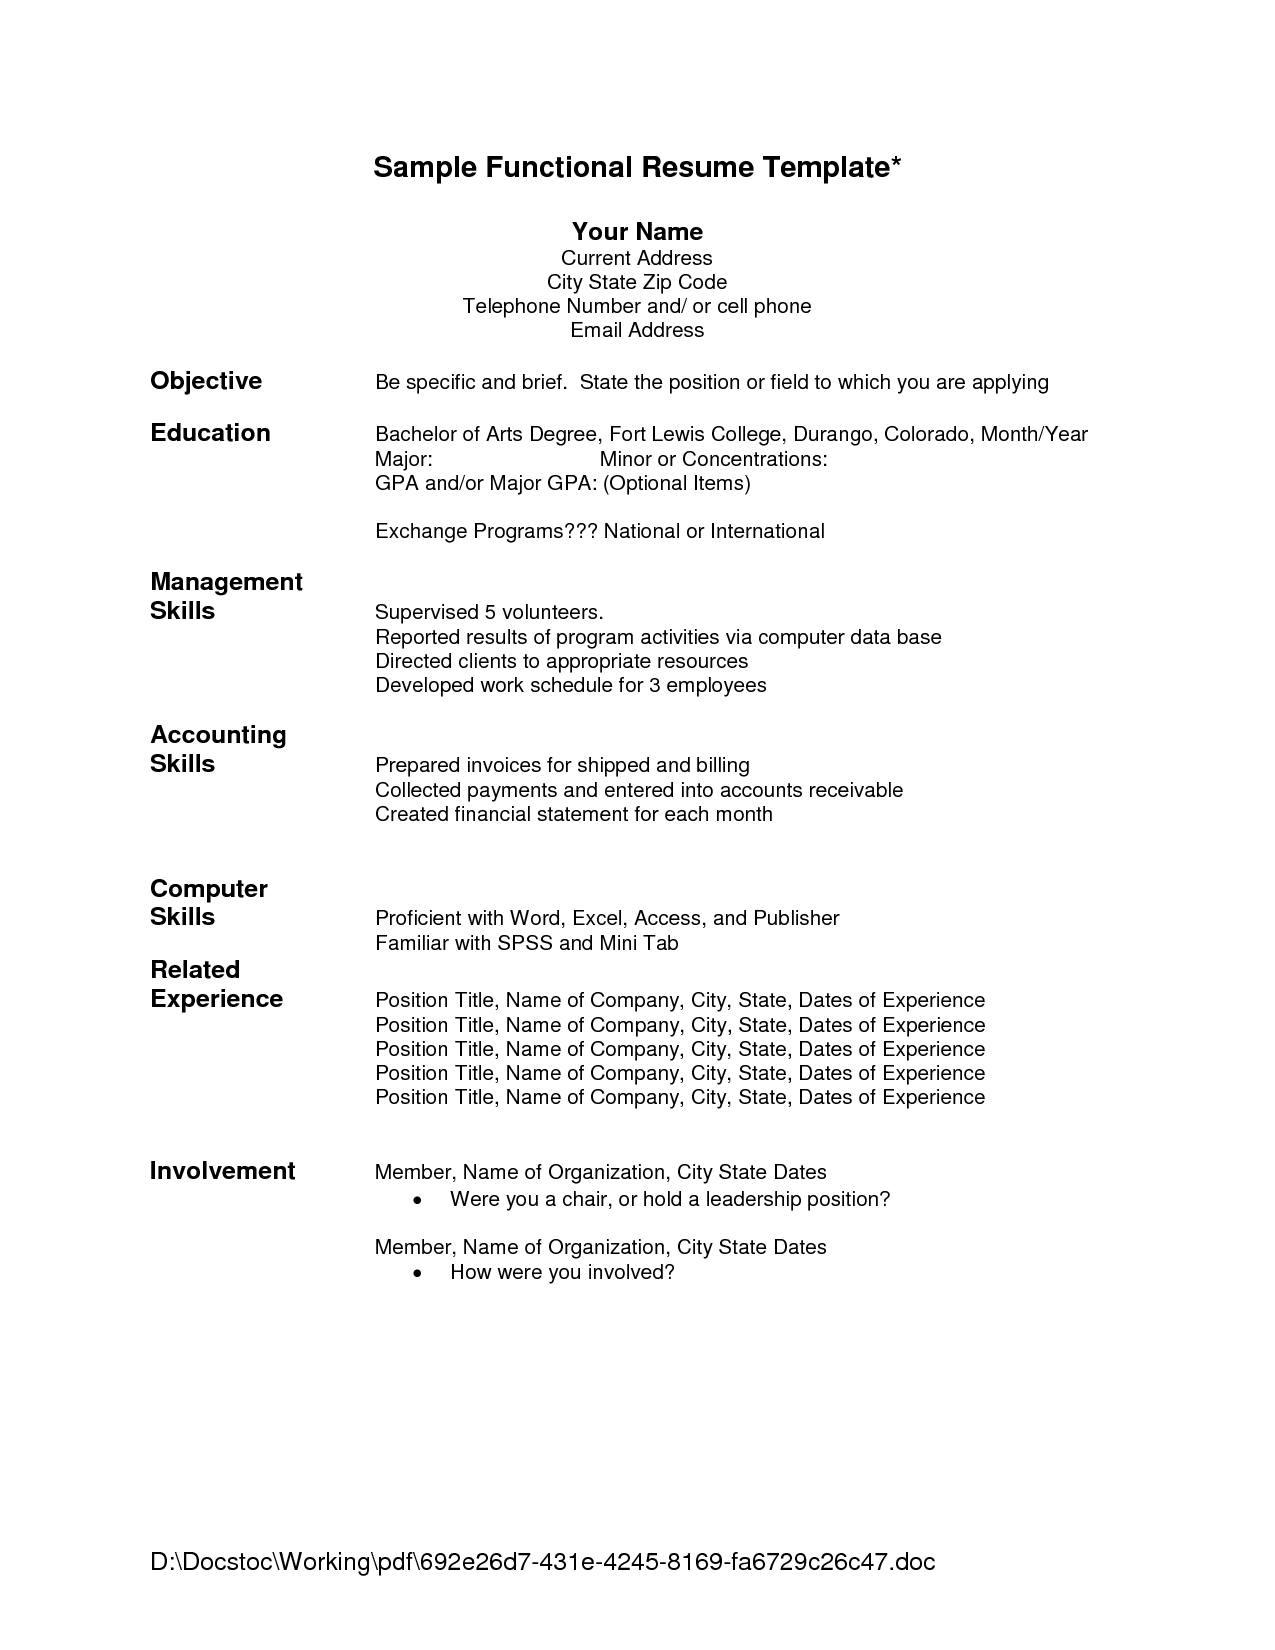 Resume Education Example Simple Sample One Page Functional Resume  Google Search  Resumes 2018